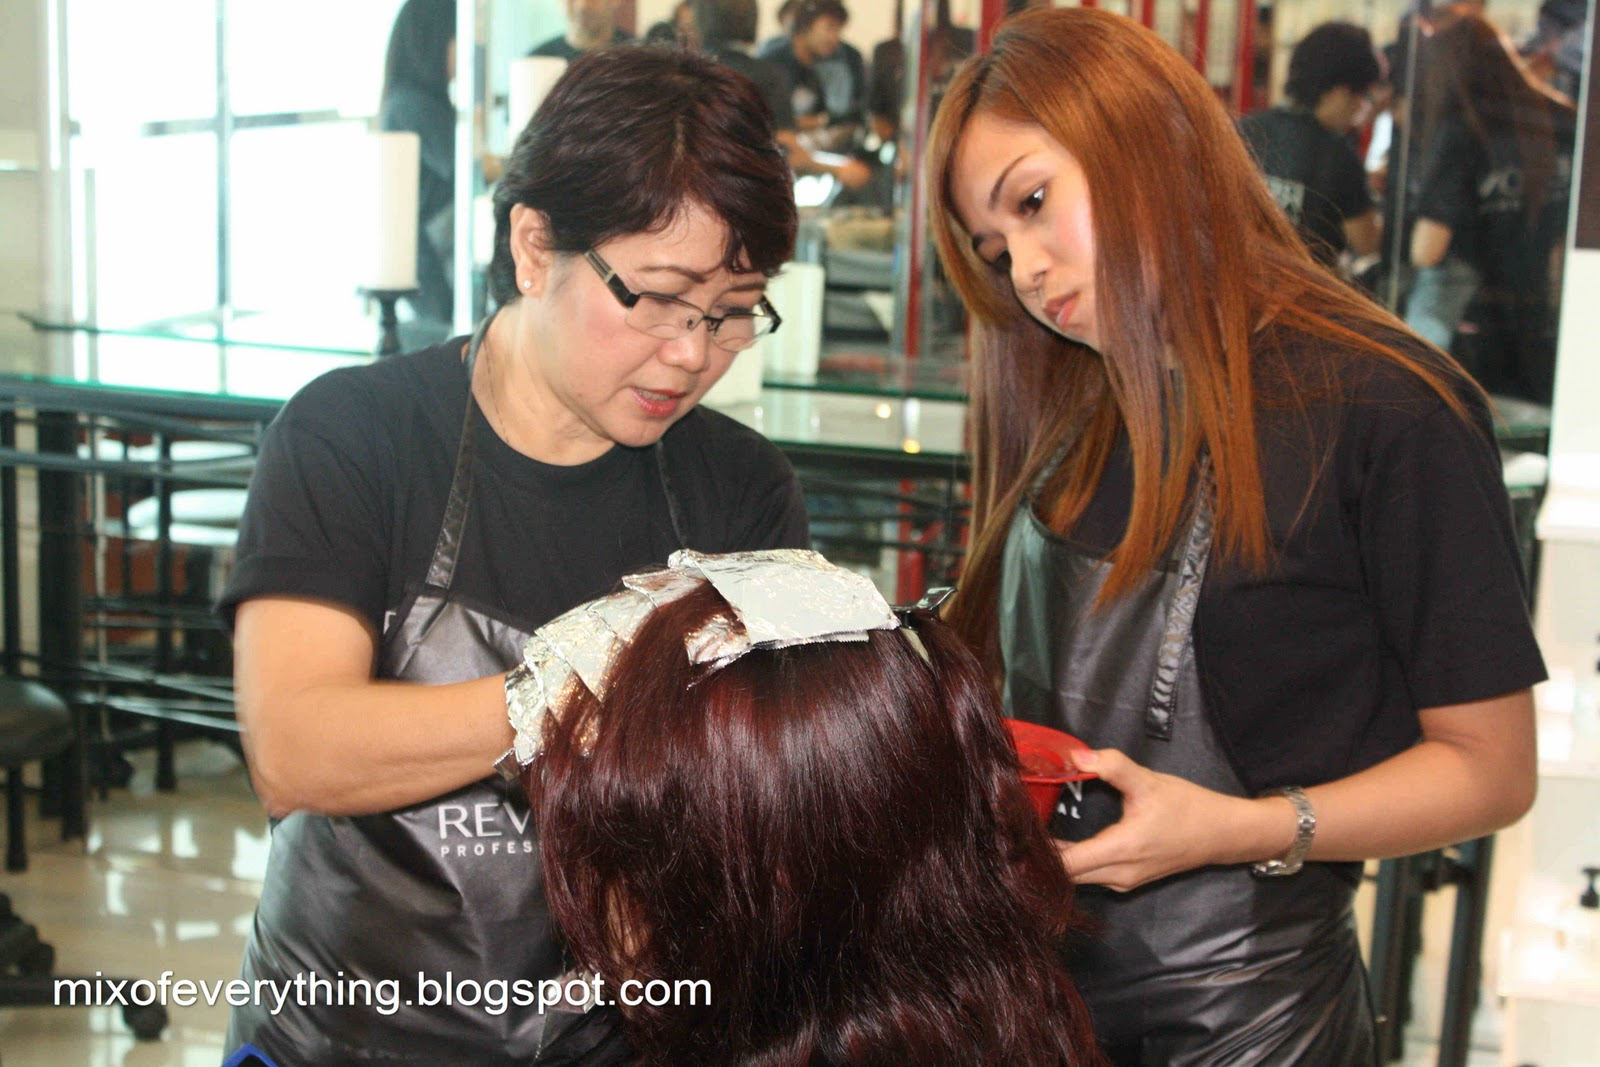 REVLON PROFESSIONAL WEEKEND MAKEOVER - Hello! Welcome to my